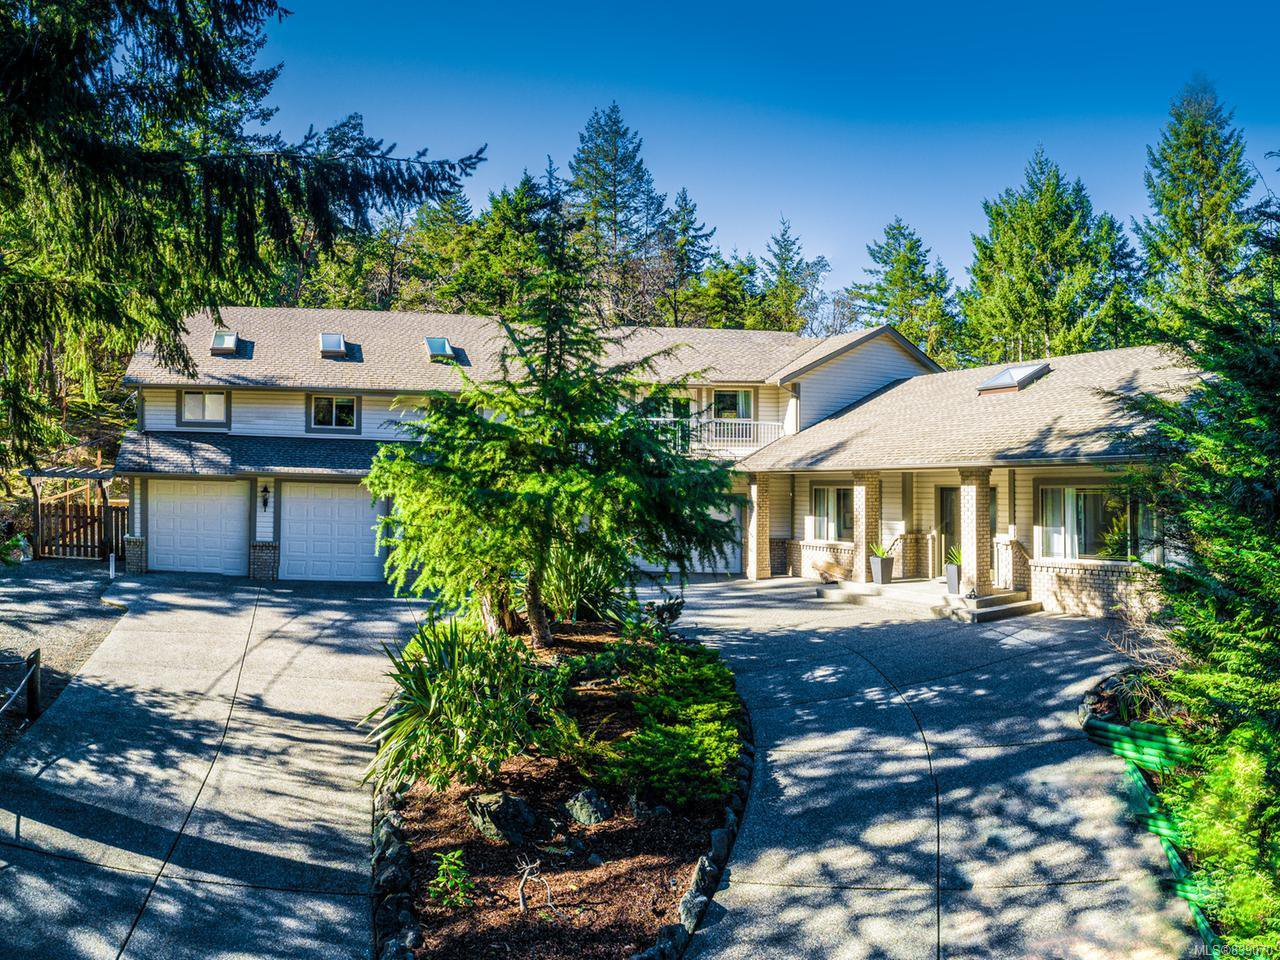 Main Photo: 2245 Florence Dr in NANOOSE BAY: PQ Nanoose House for sale (Parksville/Qualicum)  : MLS®# 839070